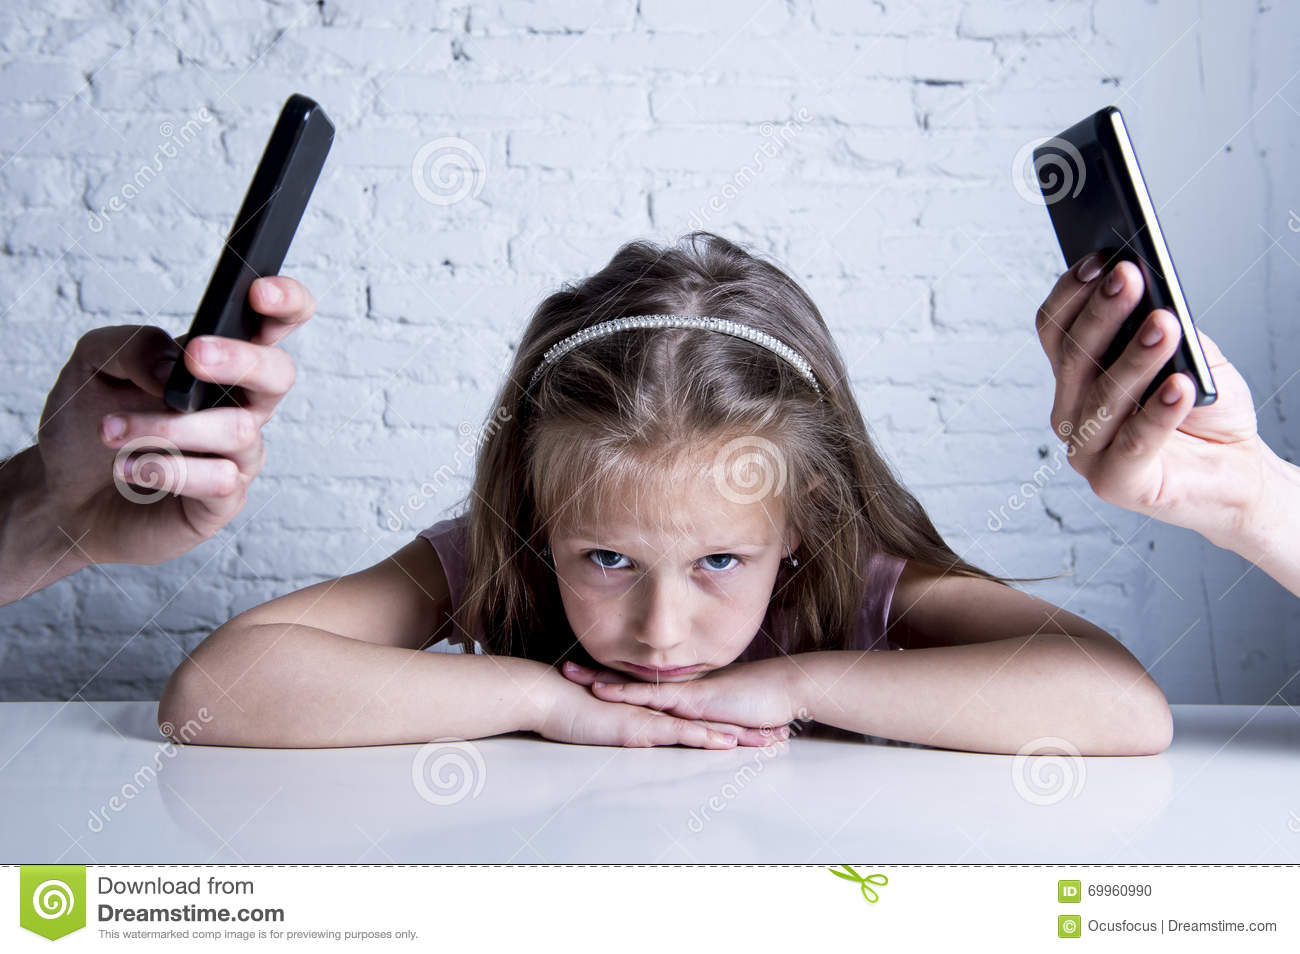 bbda5522e Hands of internet and network addict mother and father using mobile phone  neglecting little sad ignored daughter bored and lonely feeling abandoned  and ...